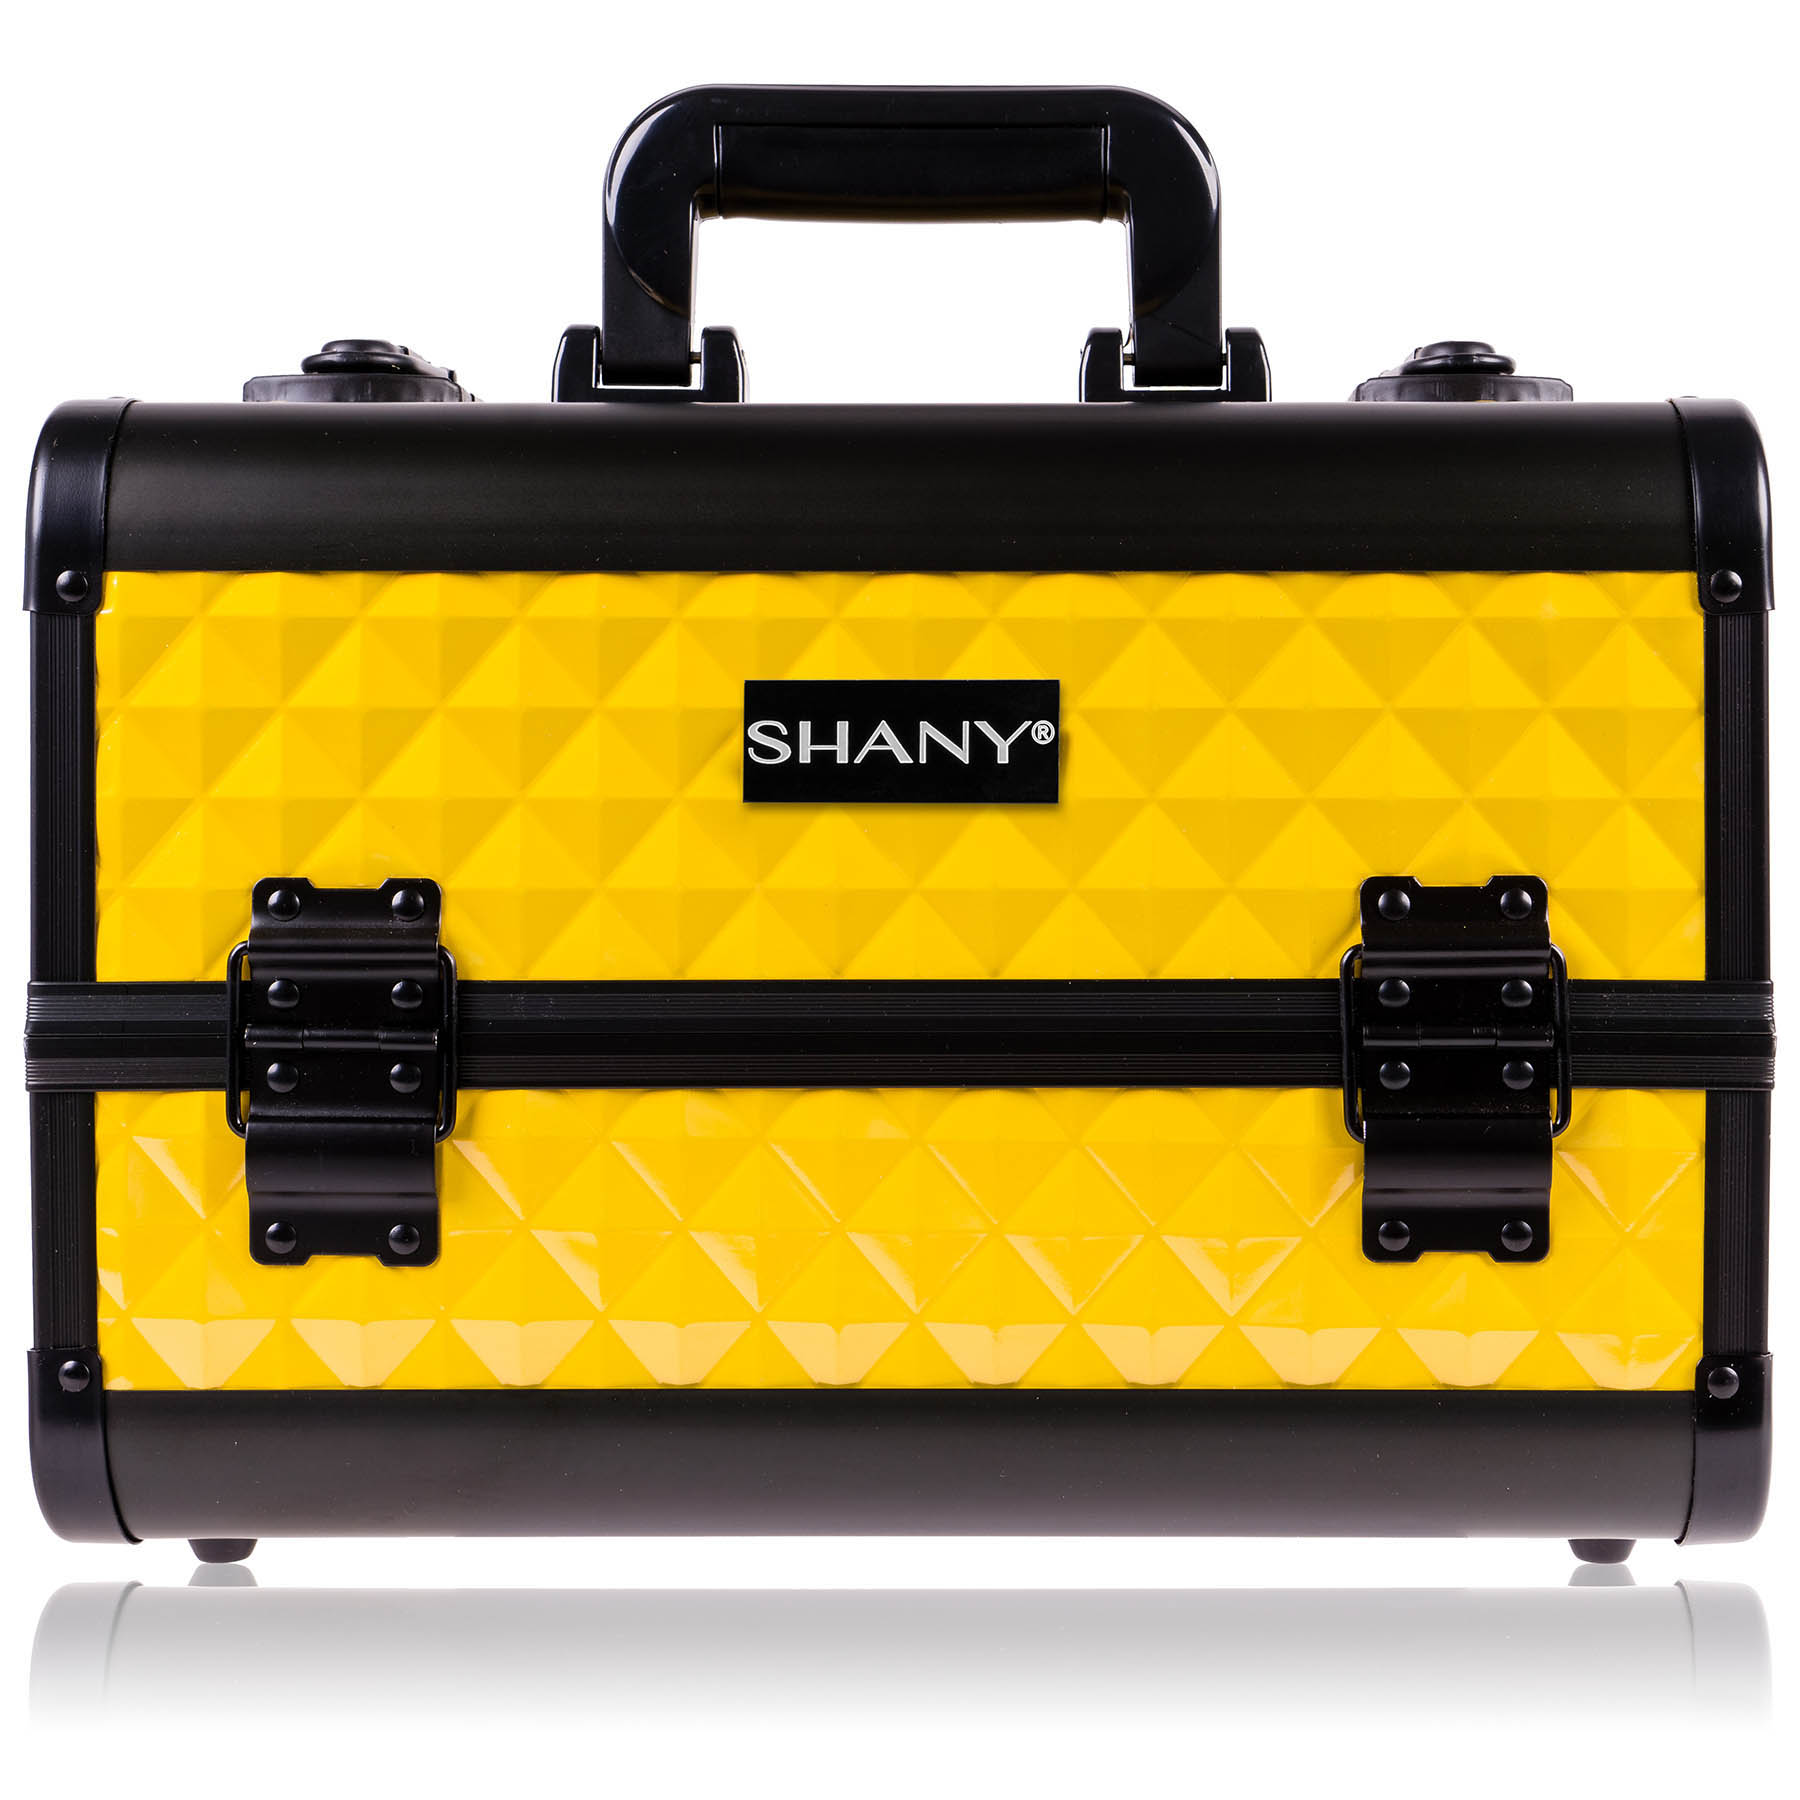 SHANY-Fantasy-Collection-Makeup-Artists-Cosmetics-Train-Case miniature 30